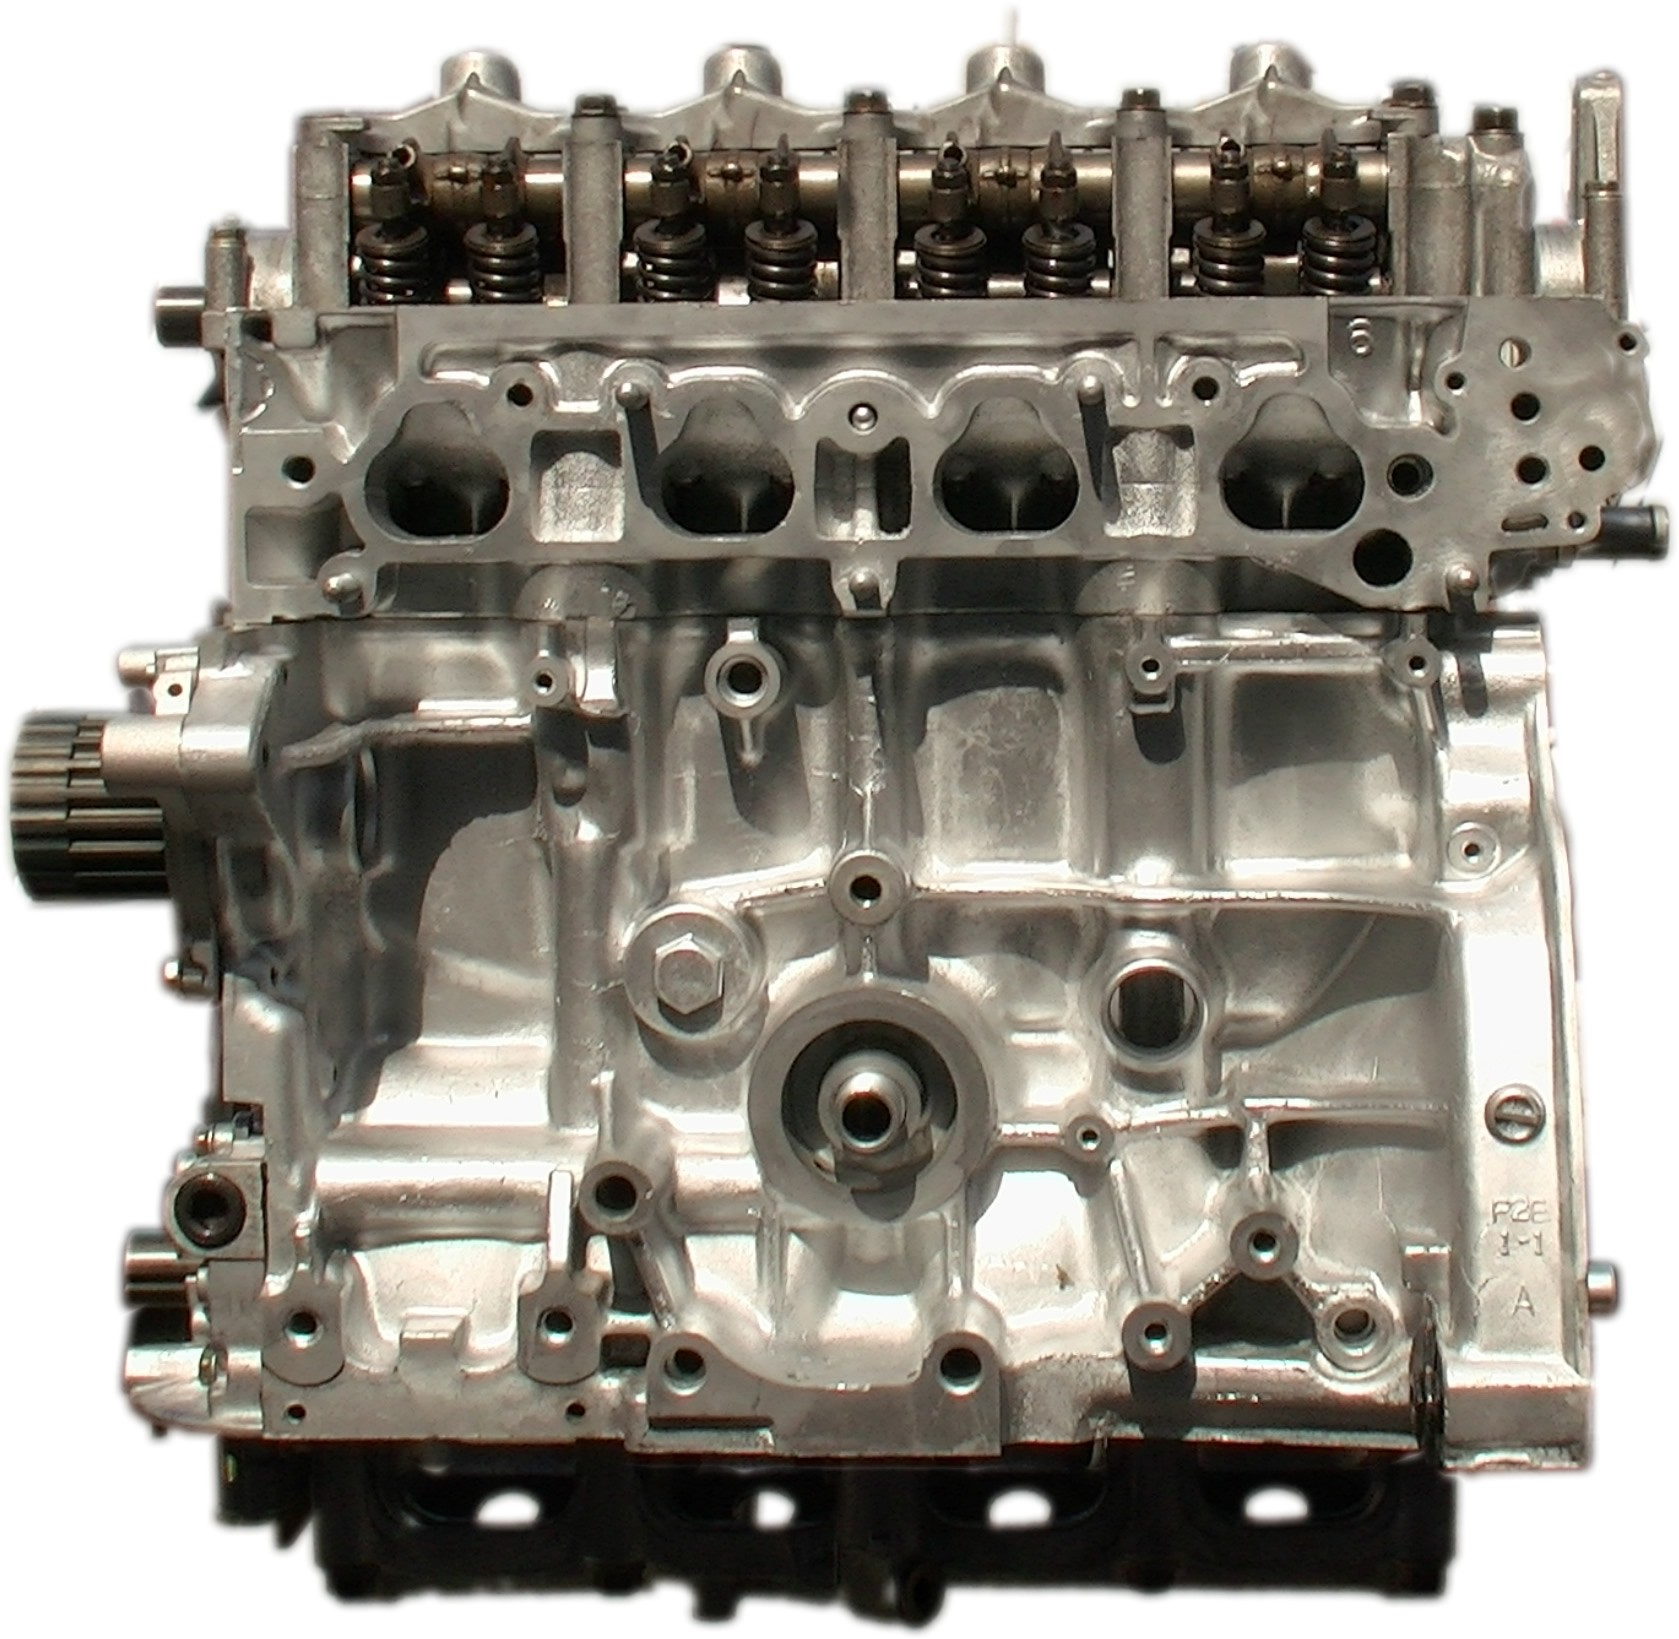 Jdm honda civic 1997-2000 d16y7 replacement engine d16a non vtec lx, dx, d15b